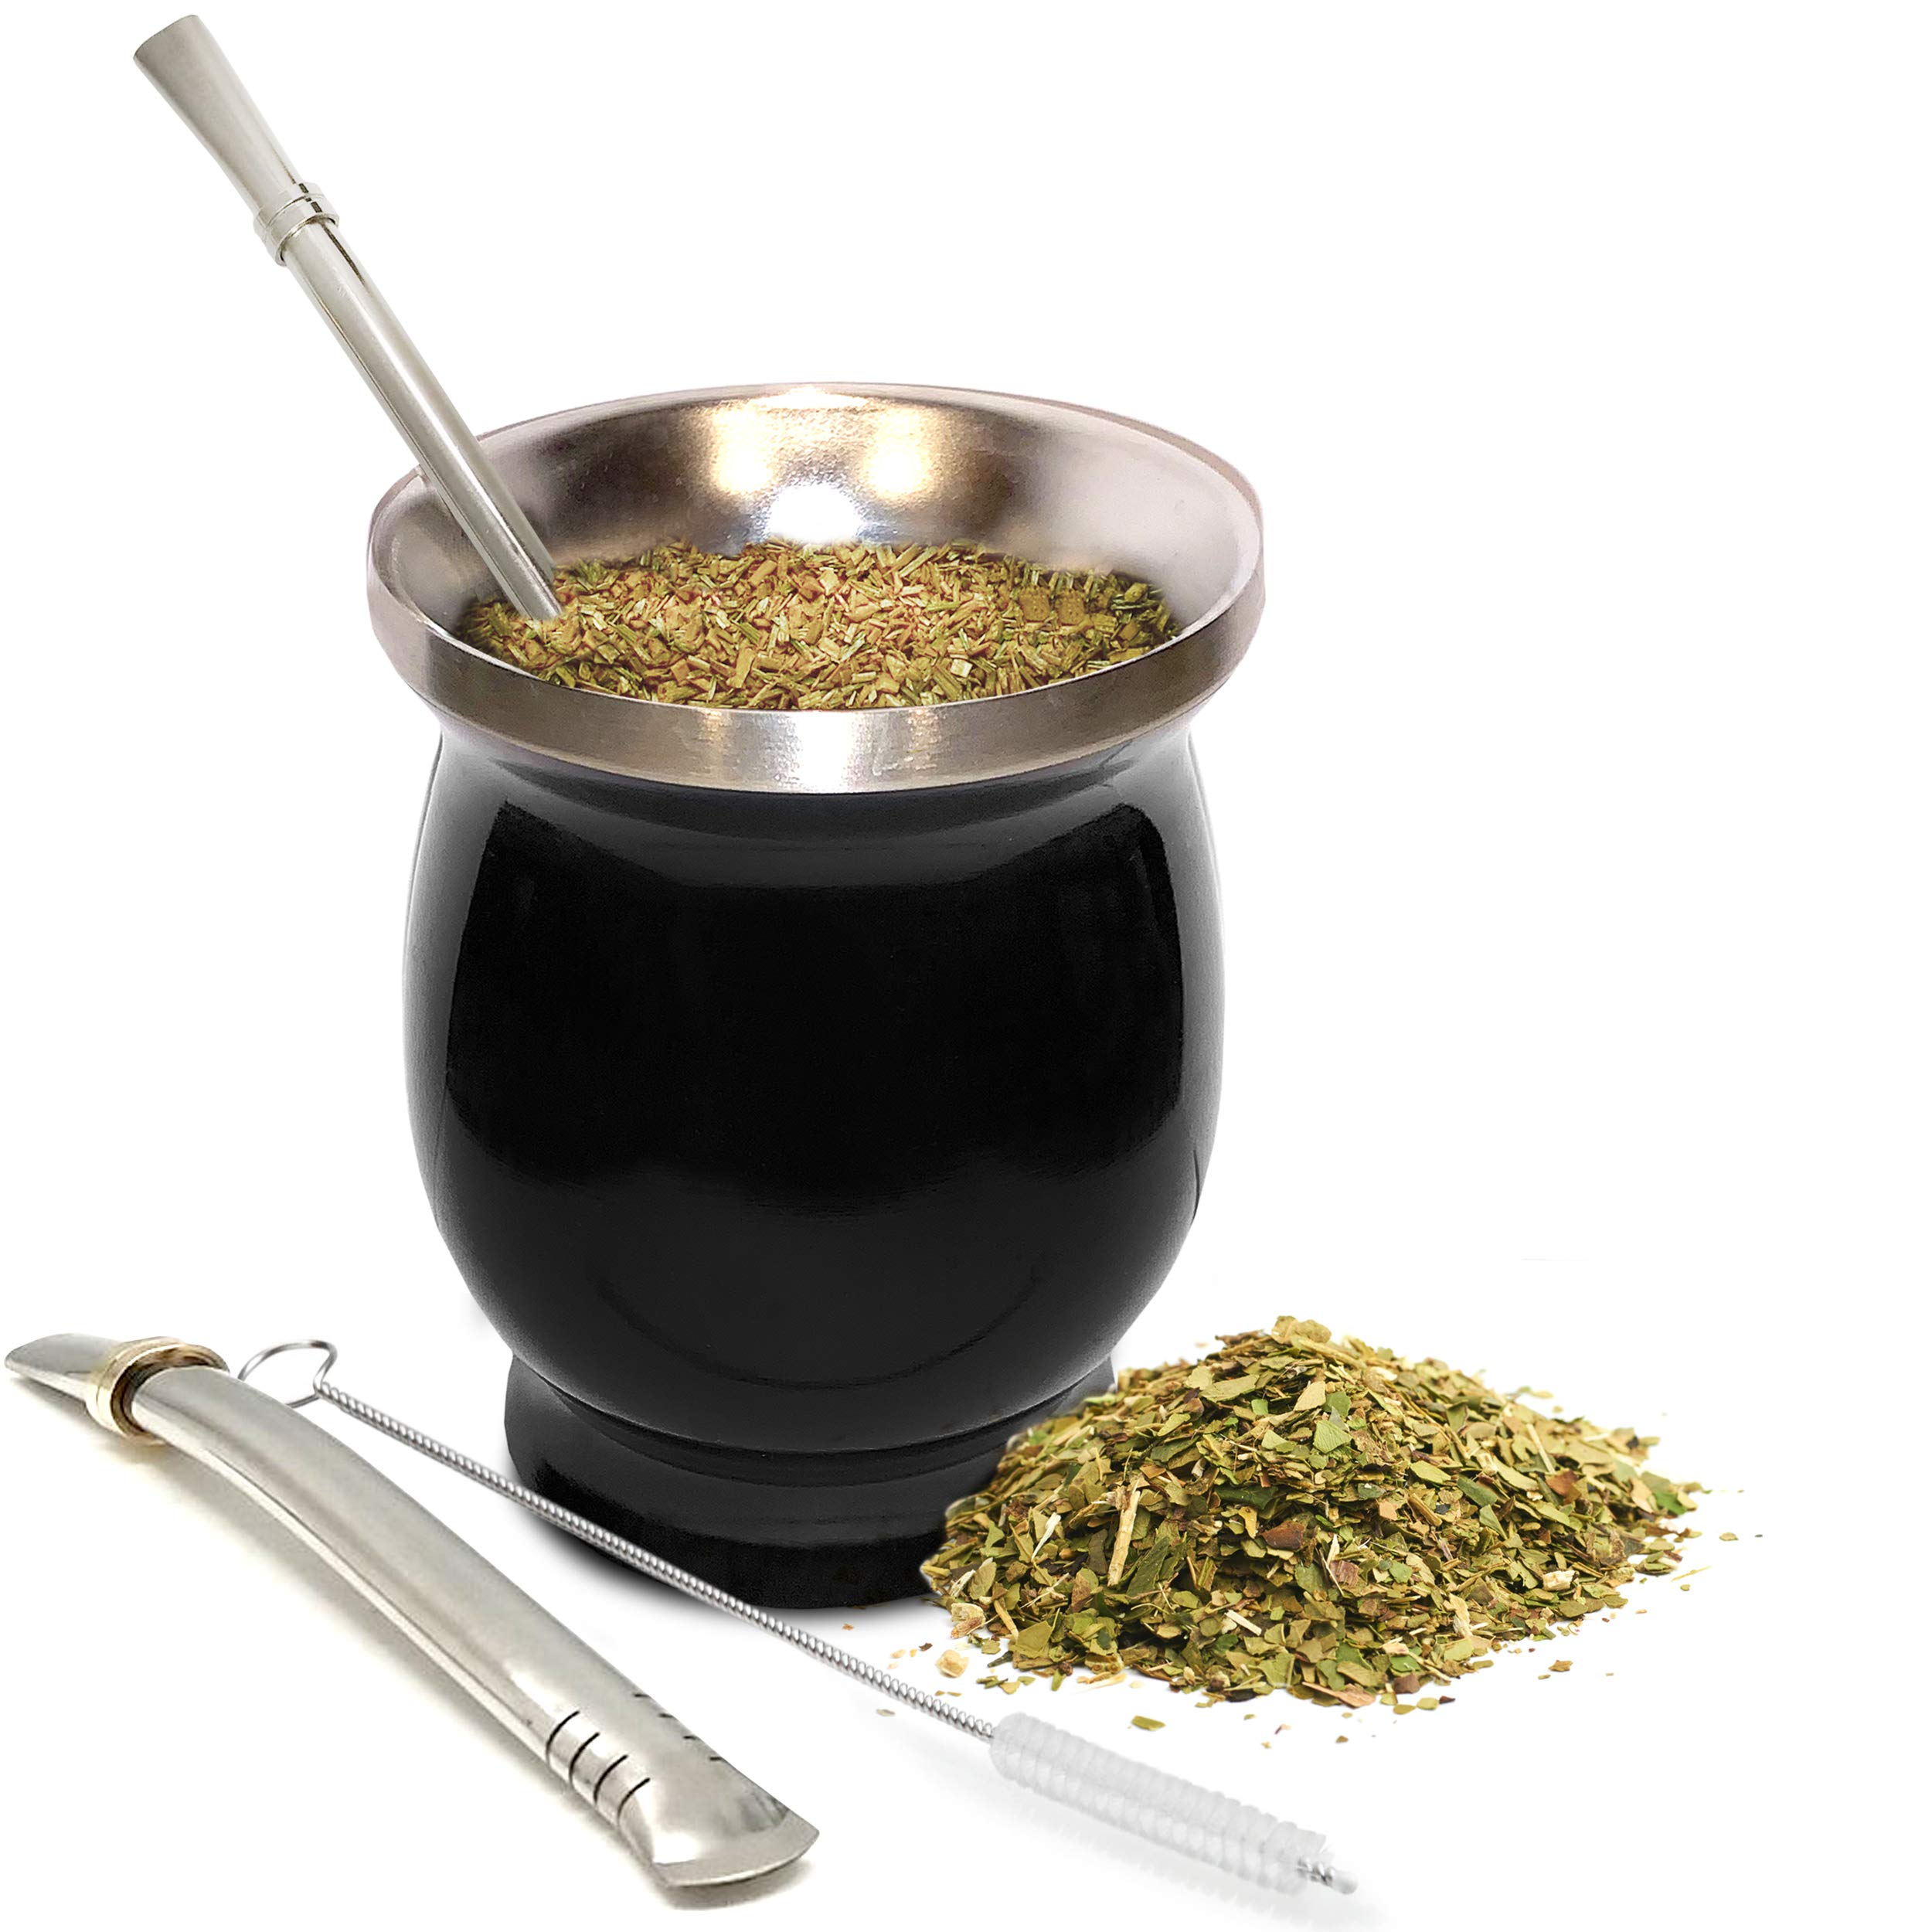 UPGRADED Yerba Mate Natural Gourd/Tea Cup Set (Original Traditional Mate Cup - 8 Ounces) | Includes 2 Bombillas (Yerba Mate Straws) & Cleaning Brush | Stainless Steel | Double-Walled | Easy to Clean